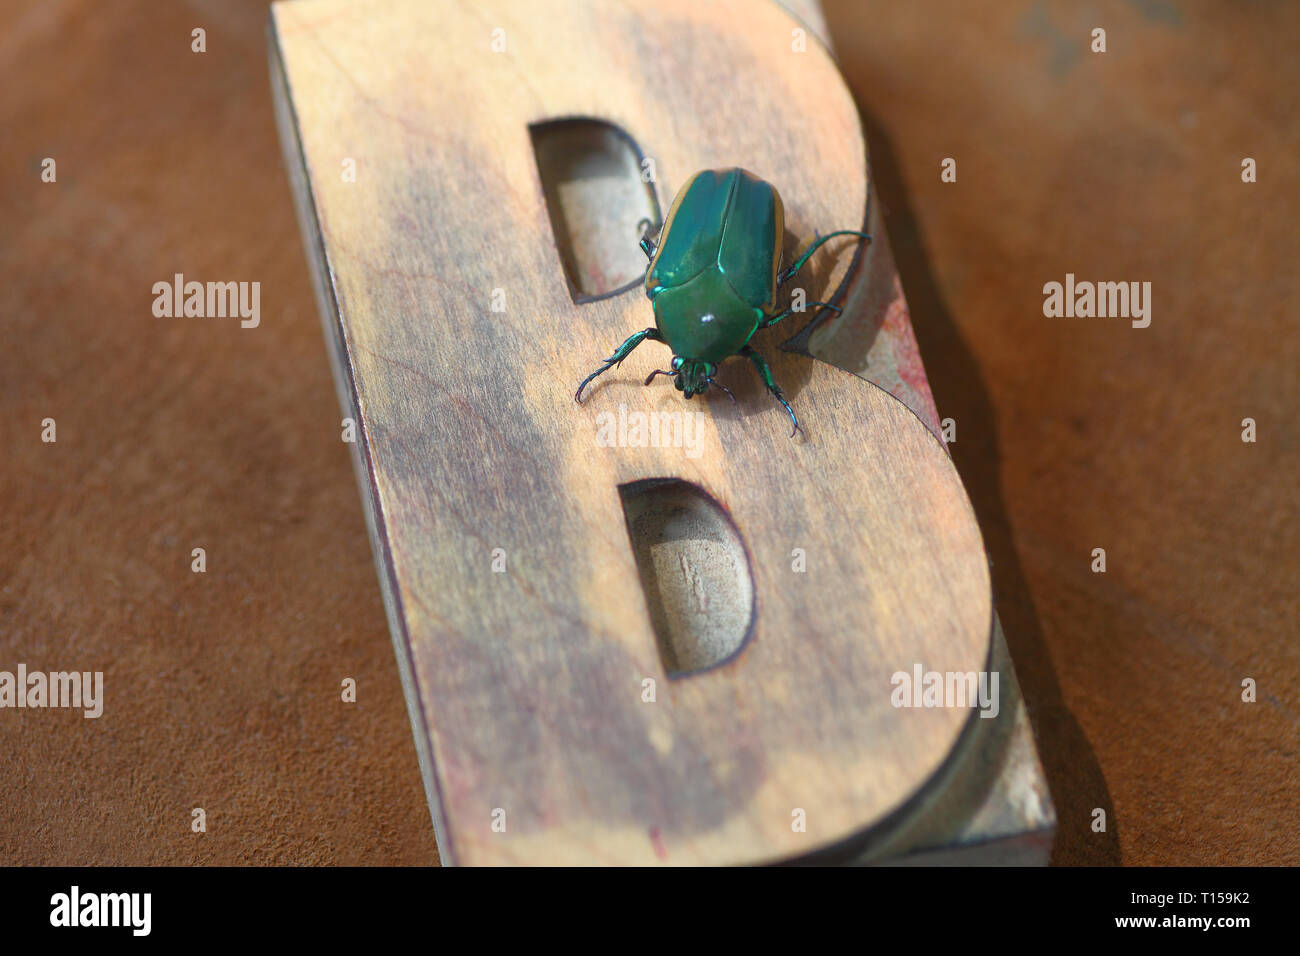 A large insect on an old wood type capital letter B - Stock Image